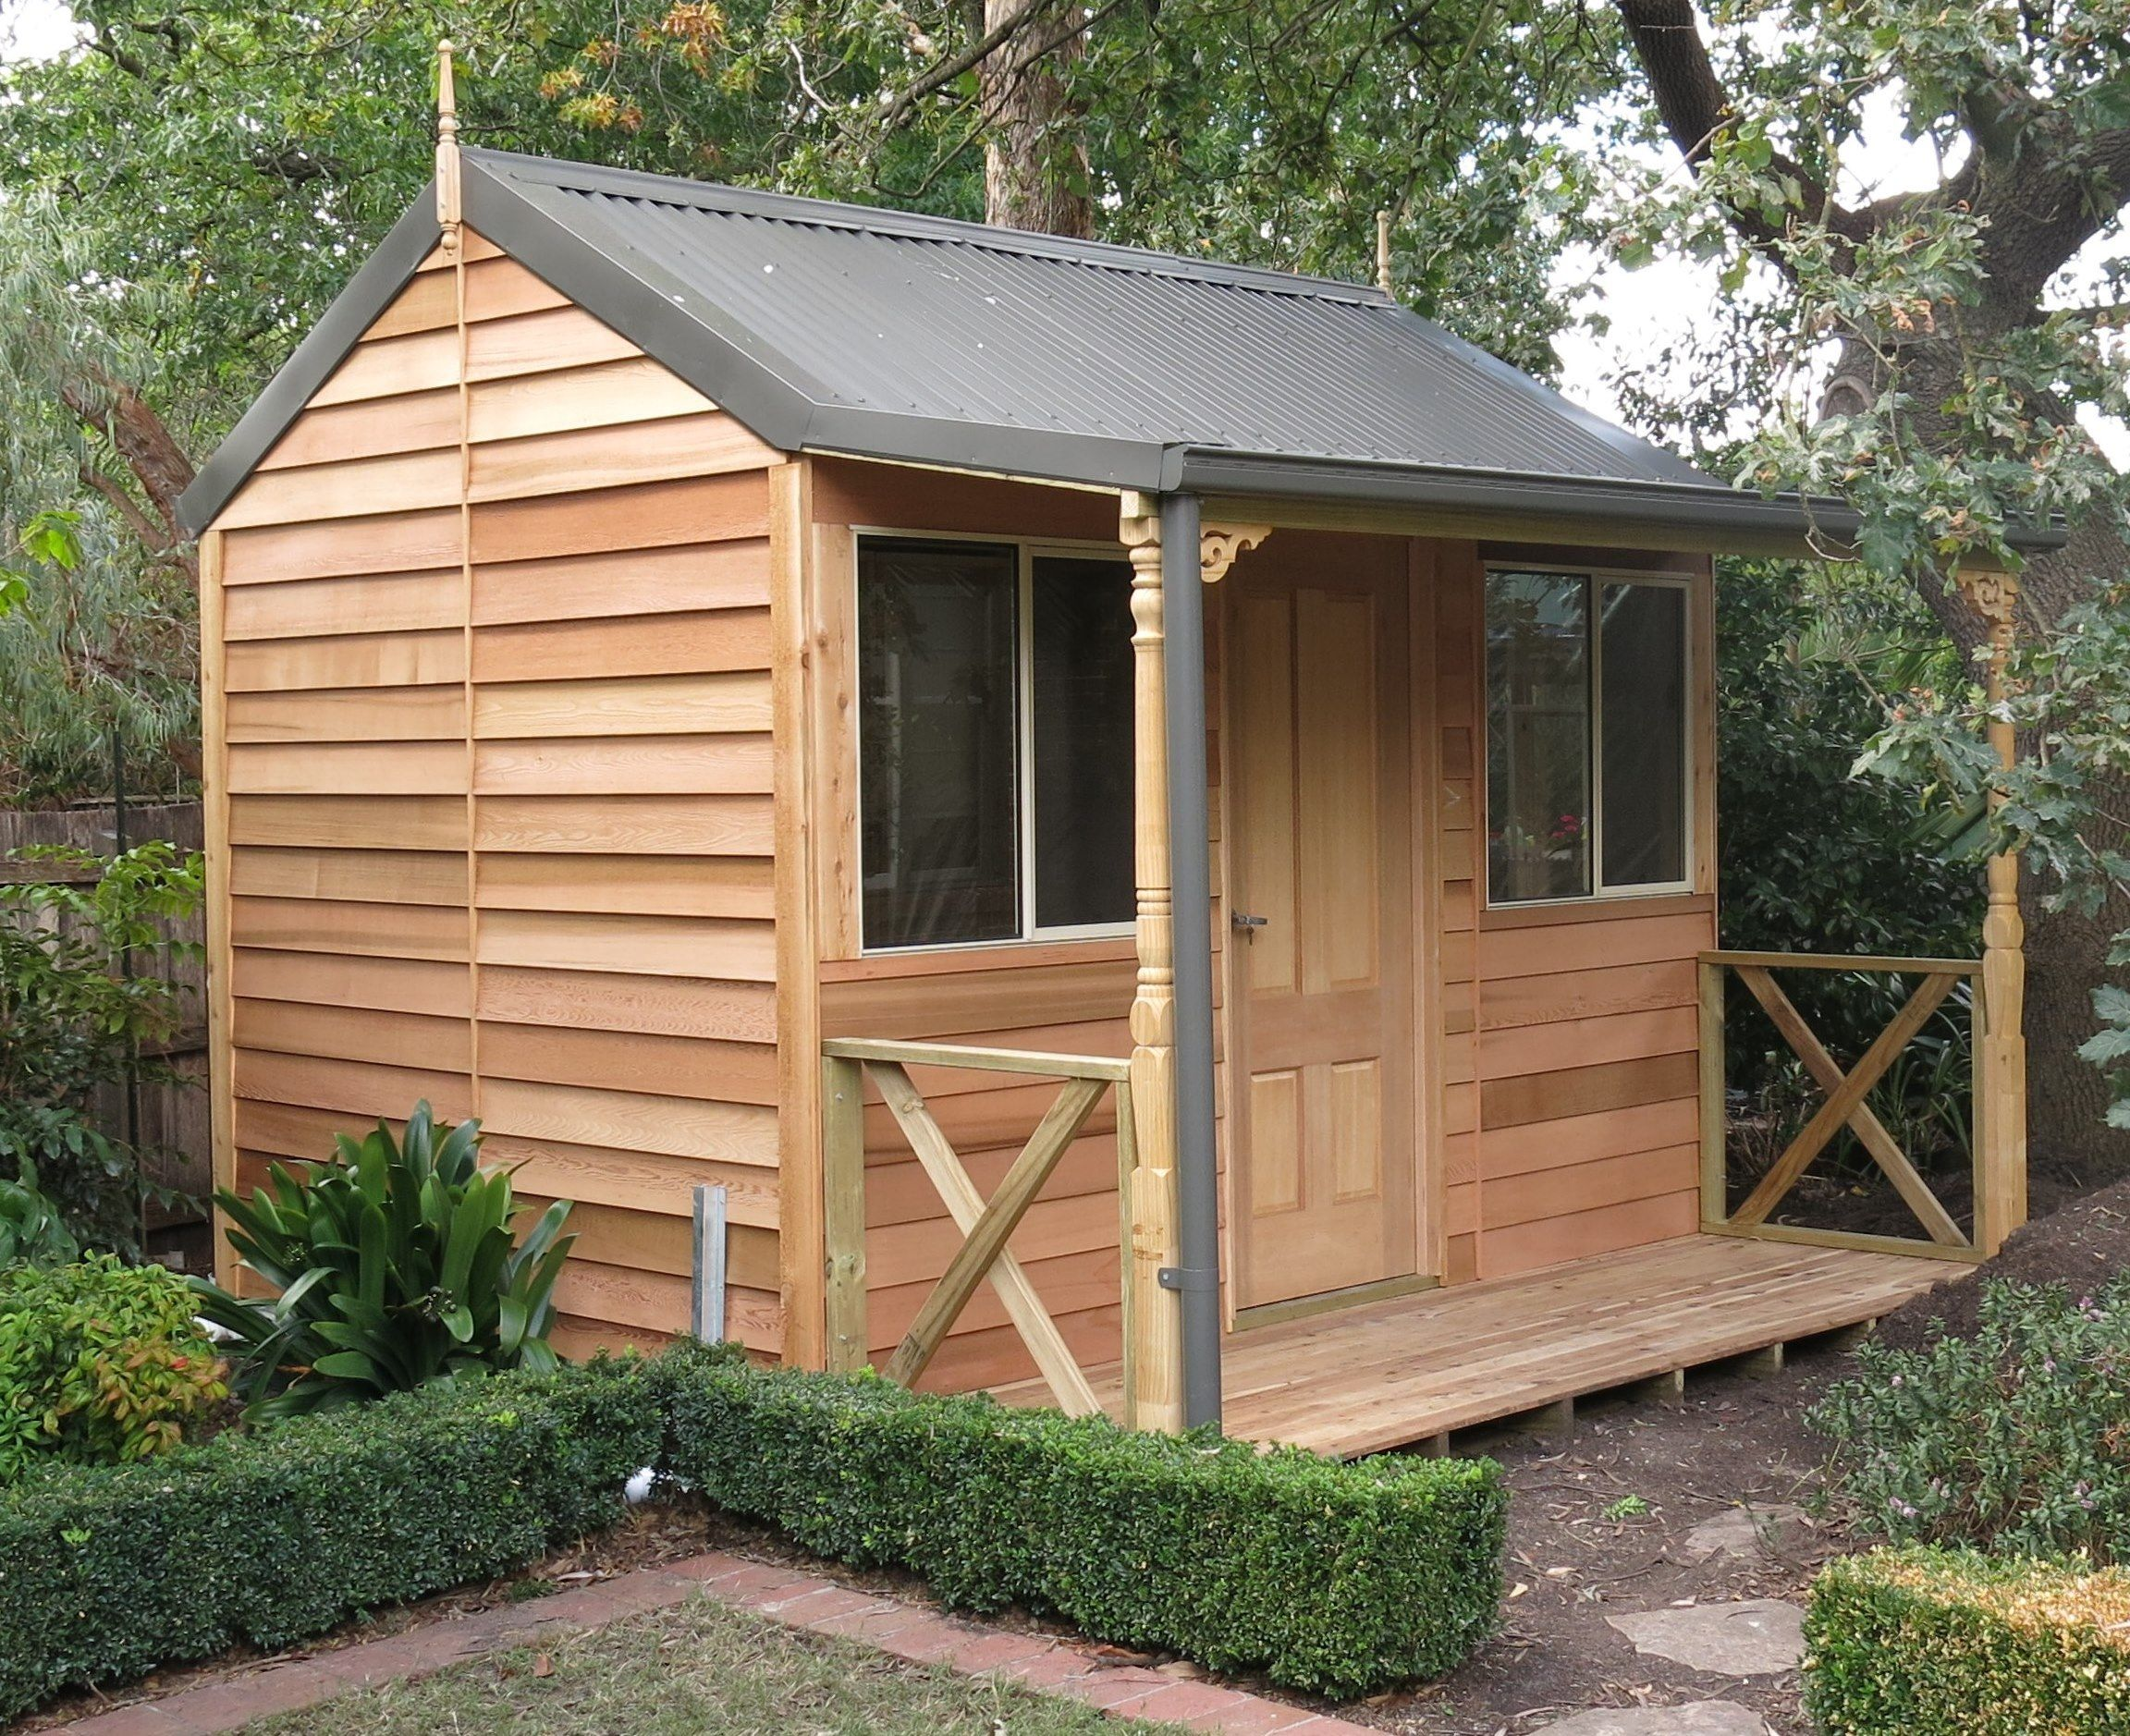 Available at Bunnings | Garden - Sheds and Greenhouses | Pinterest ...